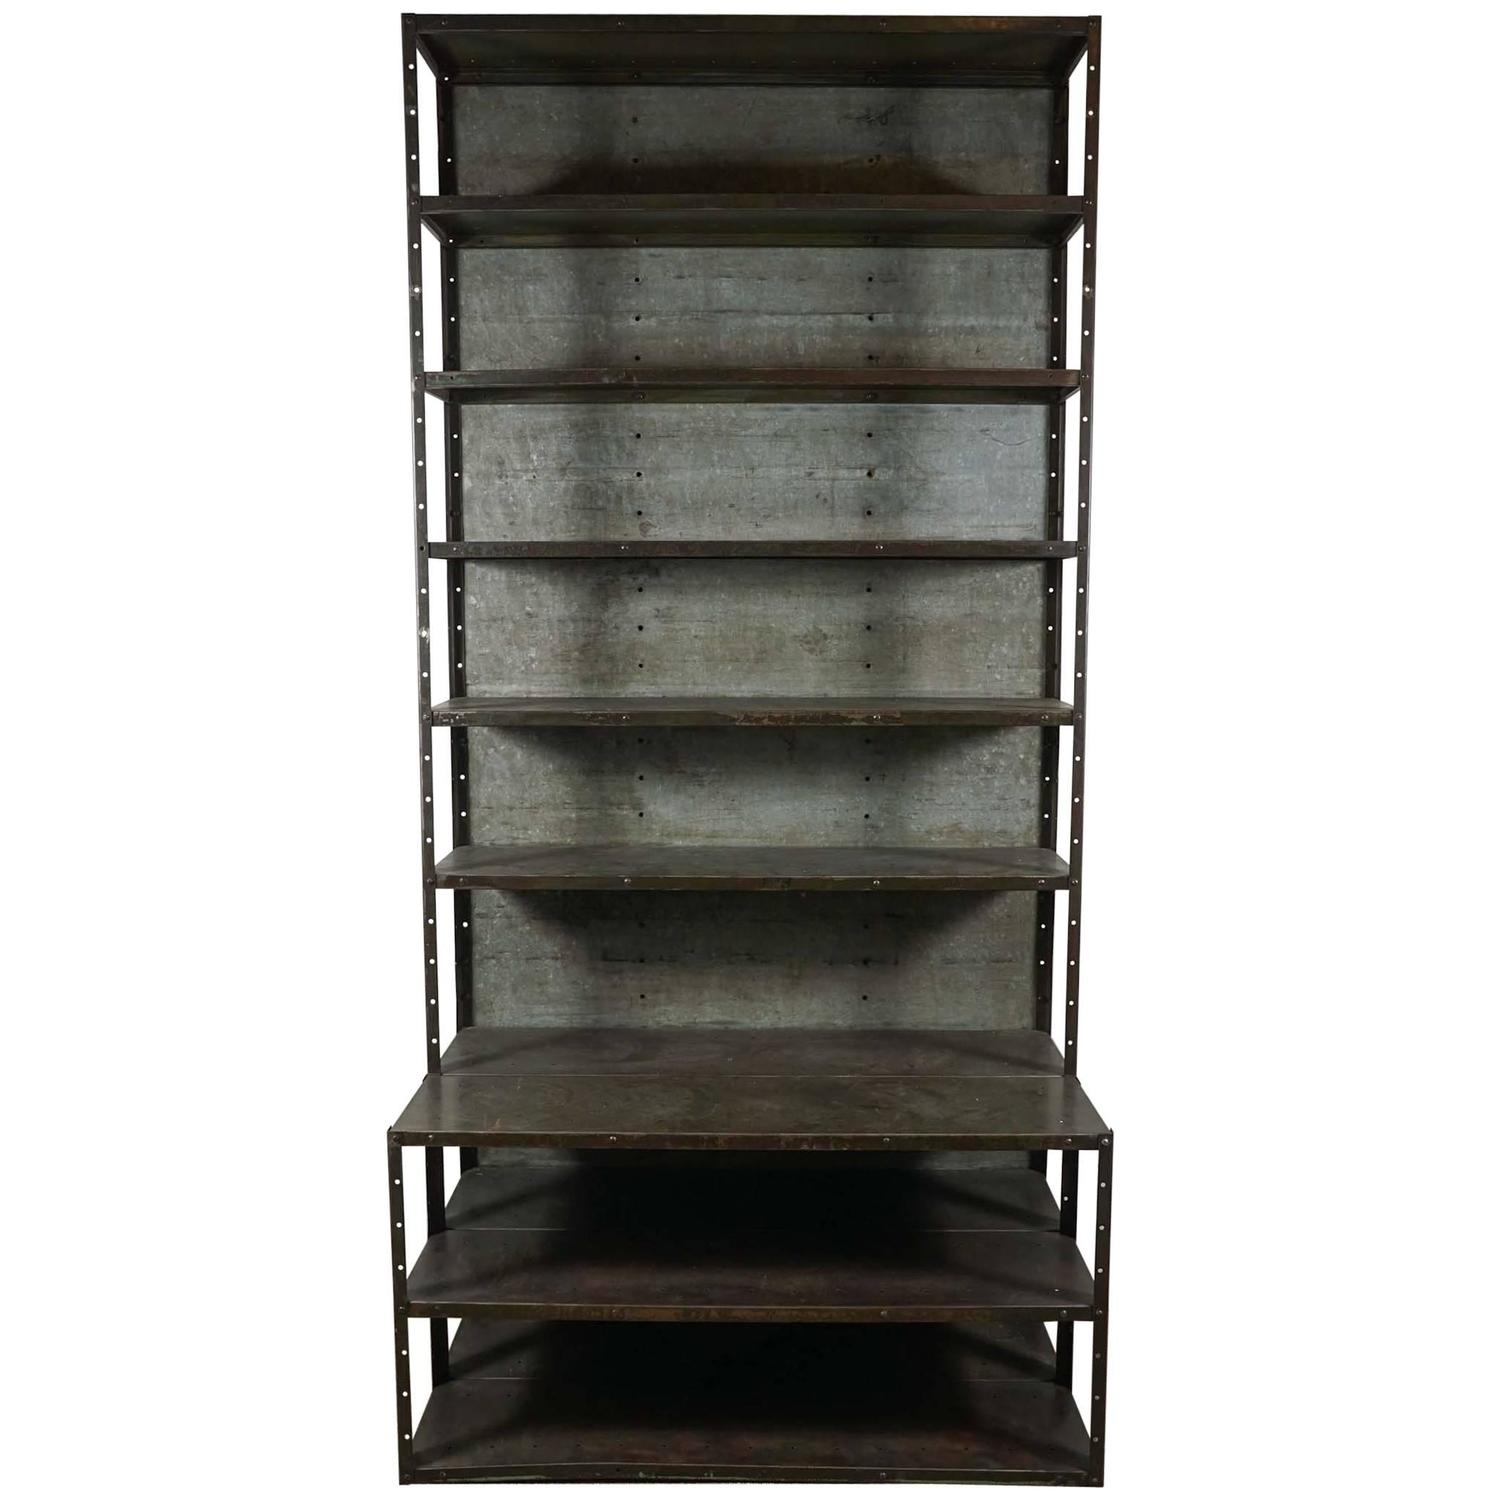 #2C2923 Industrial Gun Metal Bookcase With Extended Base For Sale At 1stdibs with 1500x1500 px of Highly Rated Metal Book Cases 15001500 picture/photo @ avoidforclosure.info